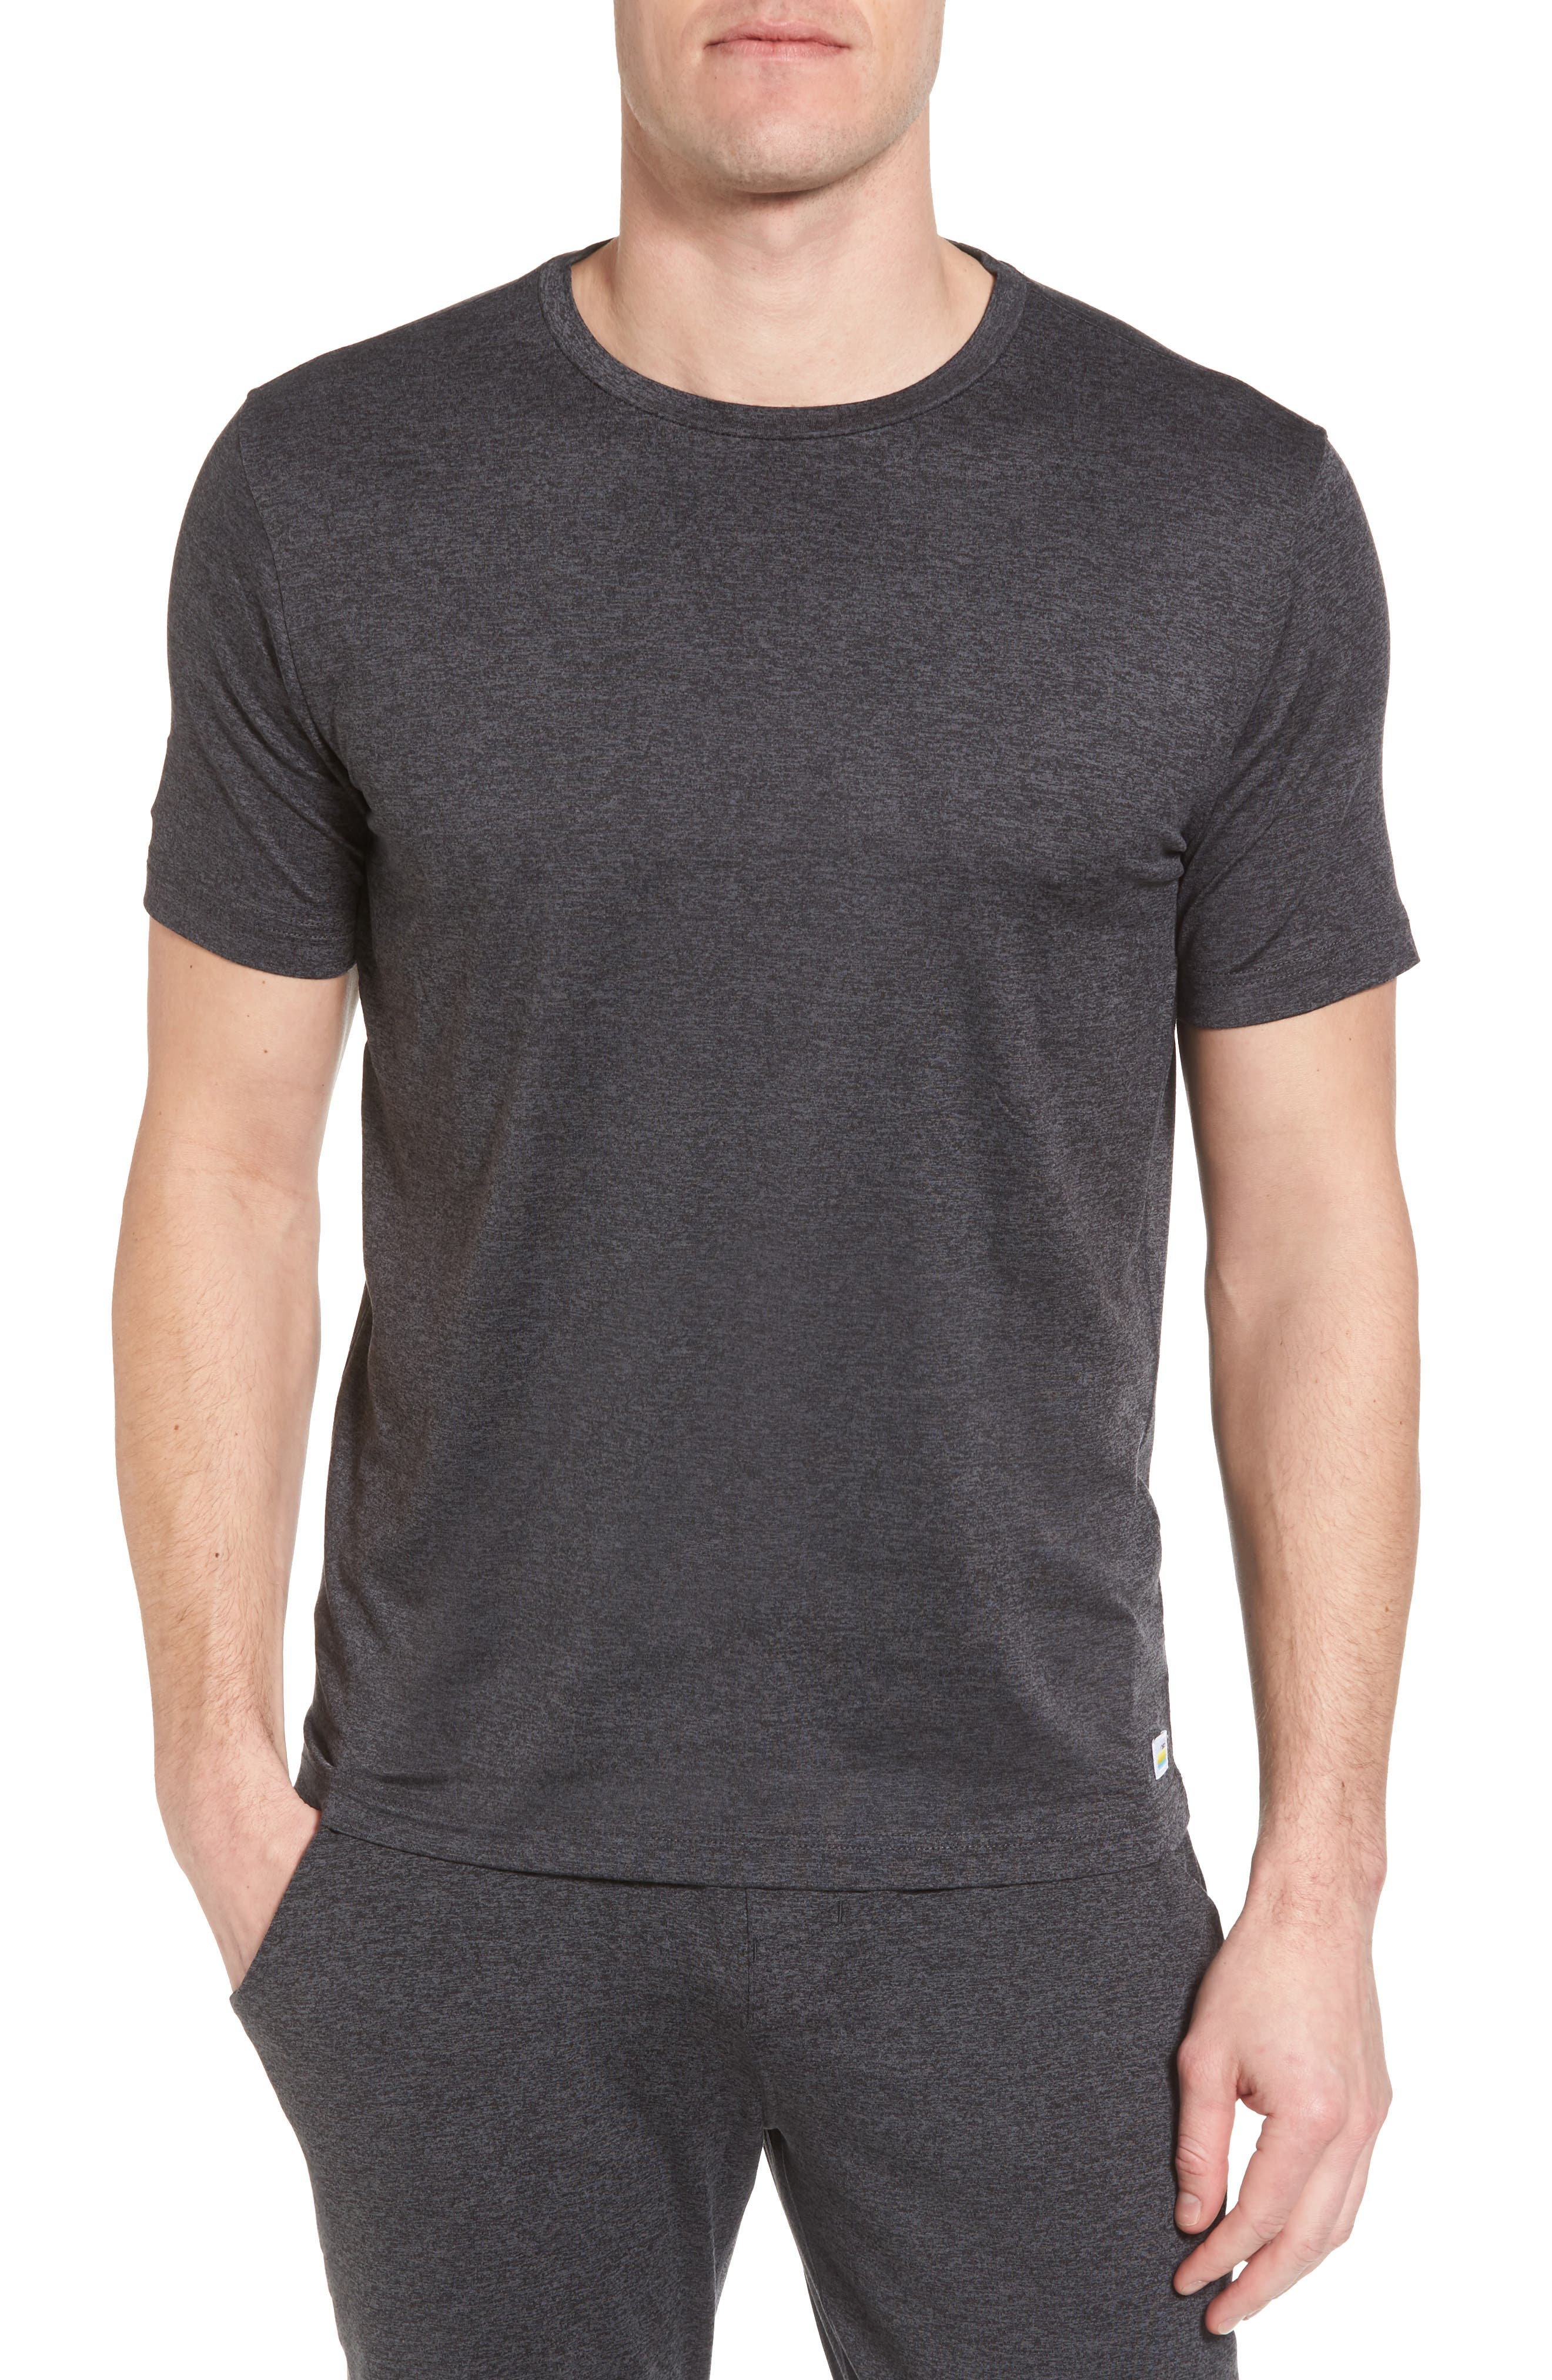 Strato Slim Fit Crewneck T-Shirt,                             Main thumbnail 1, color,                             HEATHER CHARCOAL